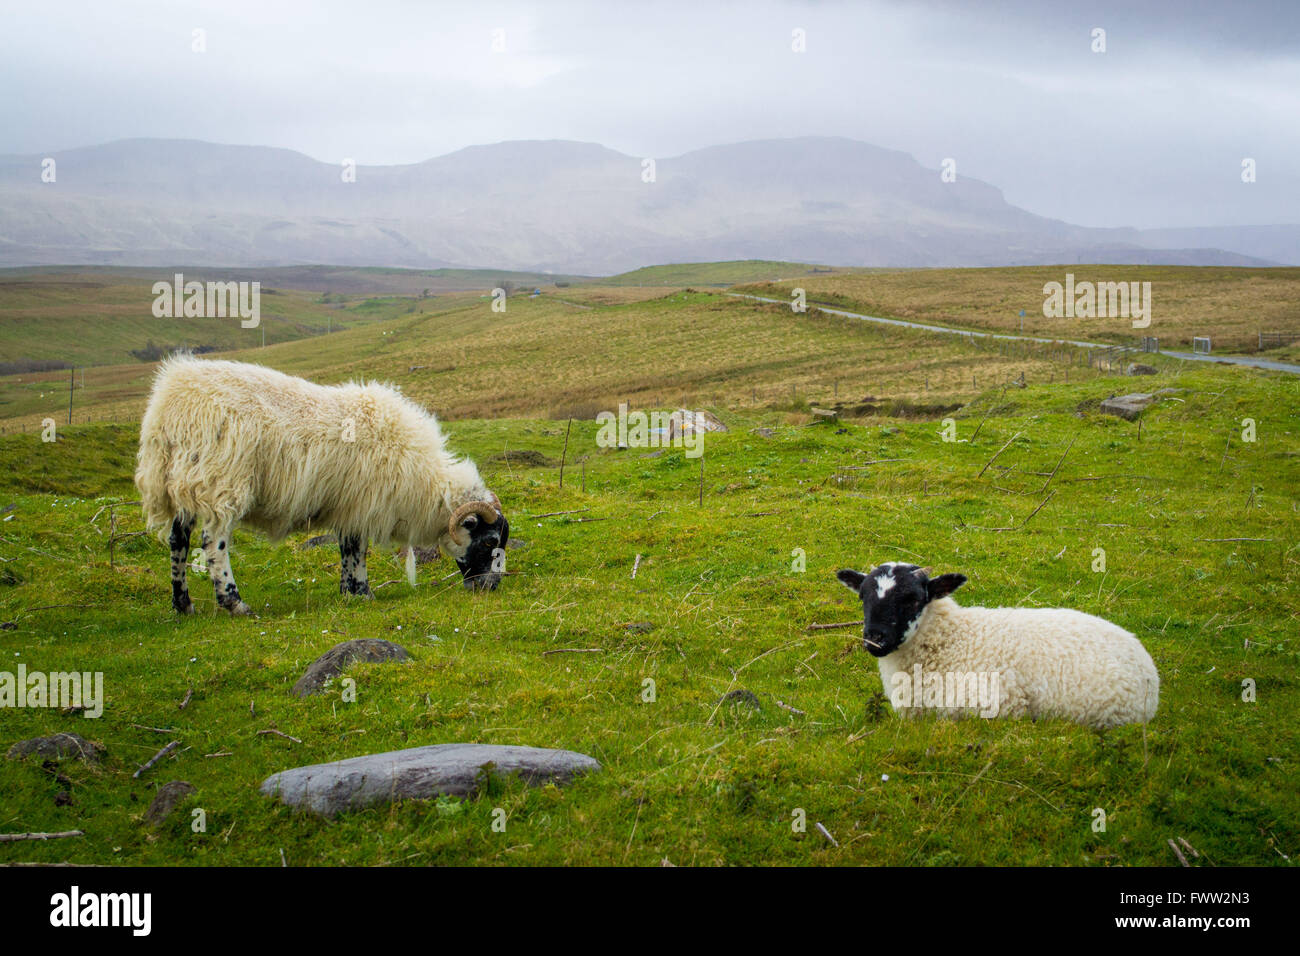 A ewe and her lamb graze on a foggy day on the Isle of Skye in Scotland - Stock Image